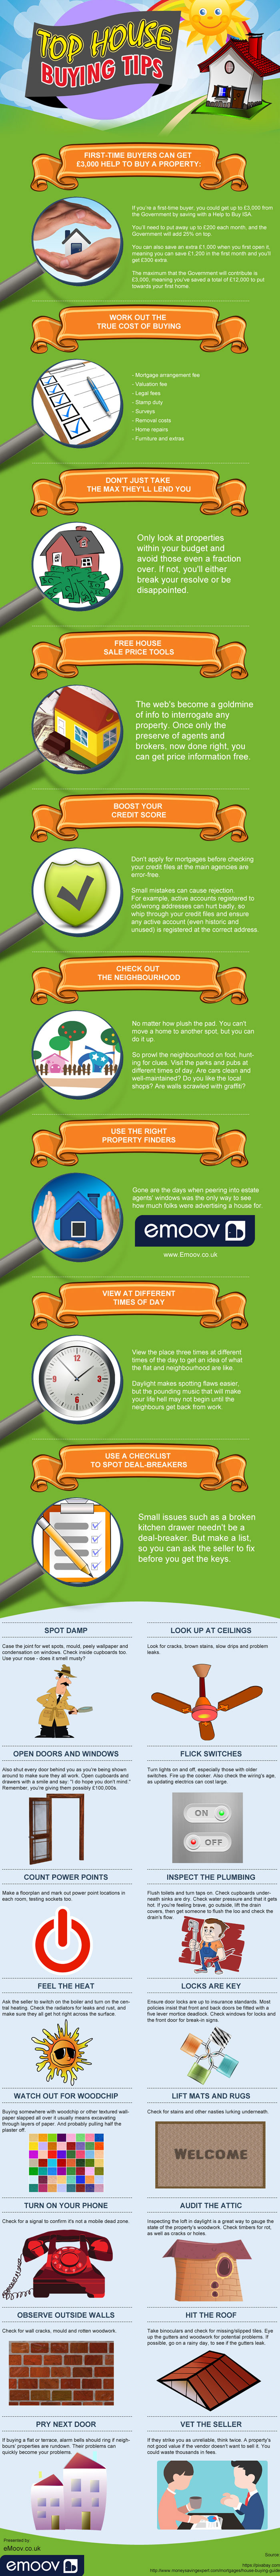 Top-House-Buying-Tips